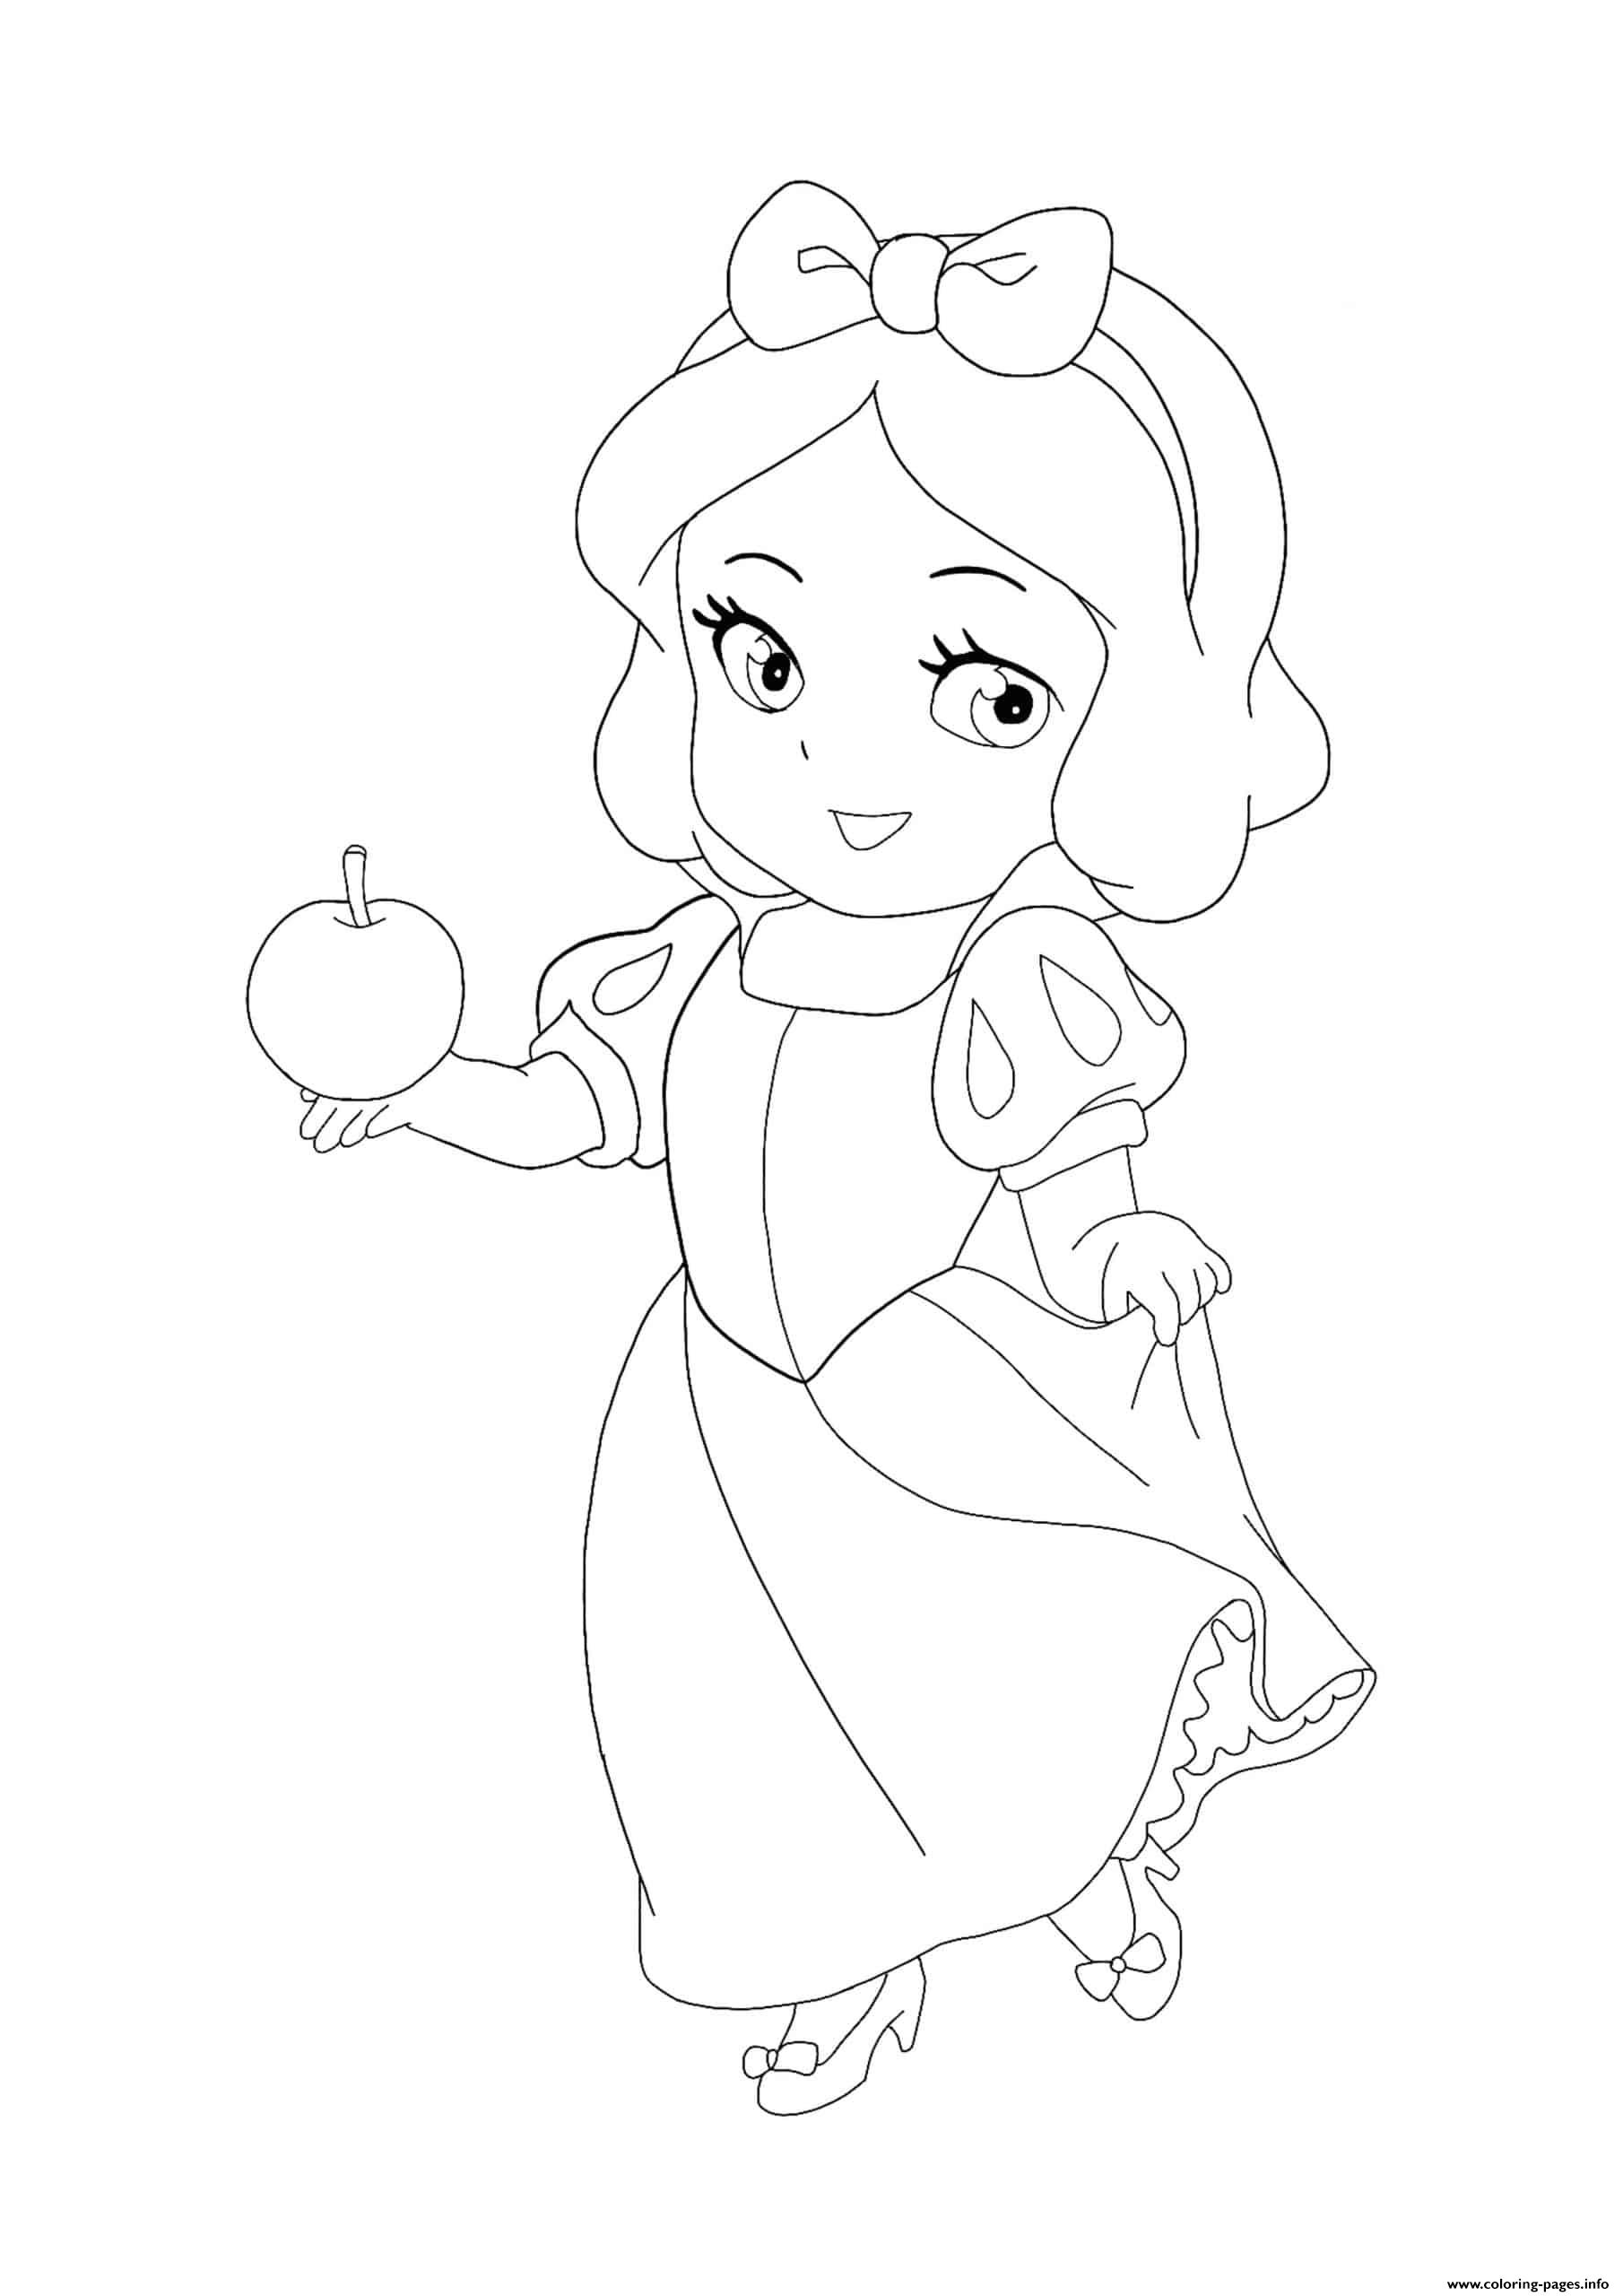 cute kawaii princess coloring pages disney princess doodles coloring page printable chibi pages cute coloring kawaii princess